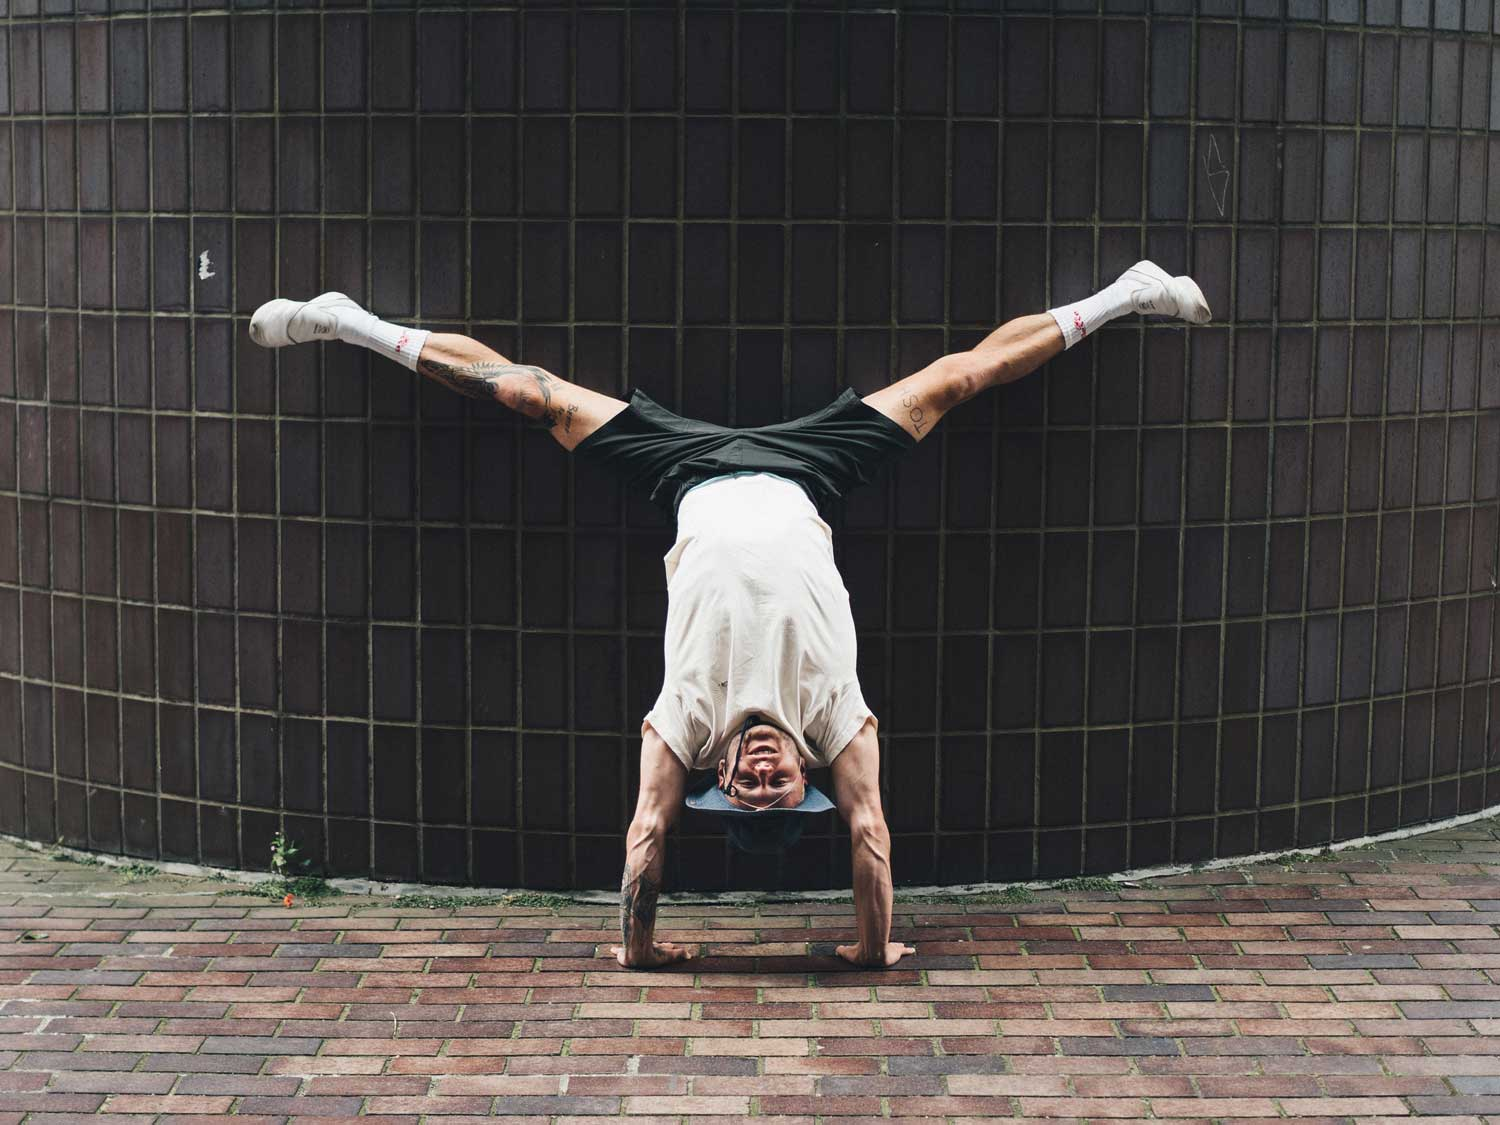 Man doing a straddle handstand against a wall